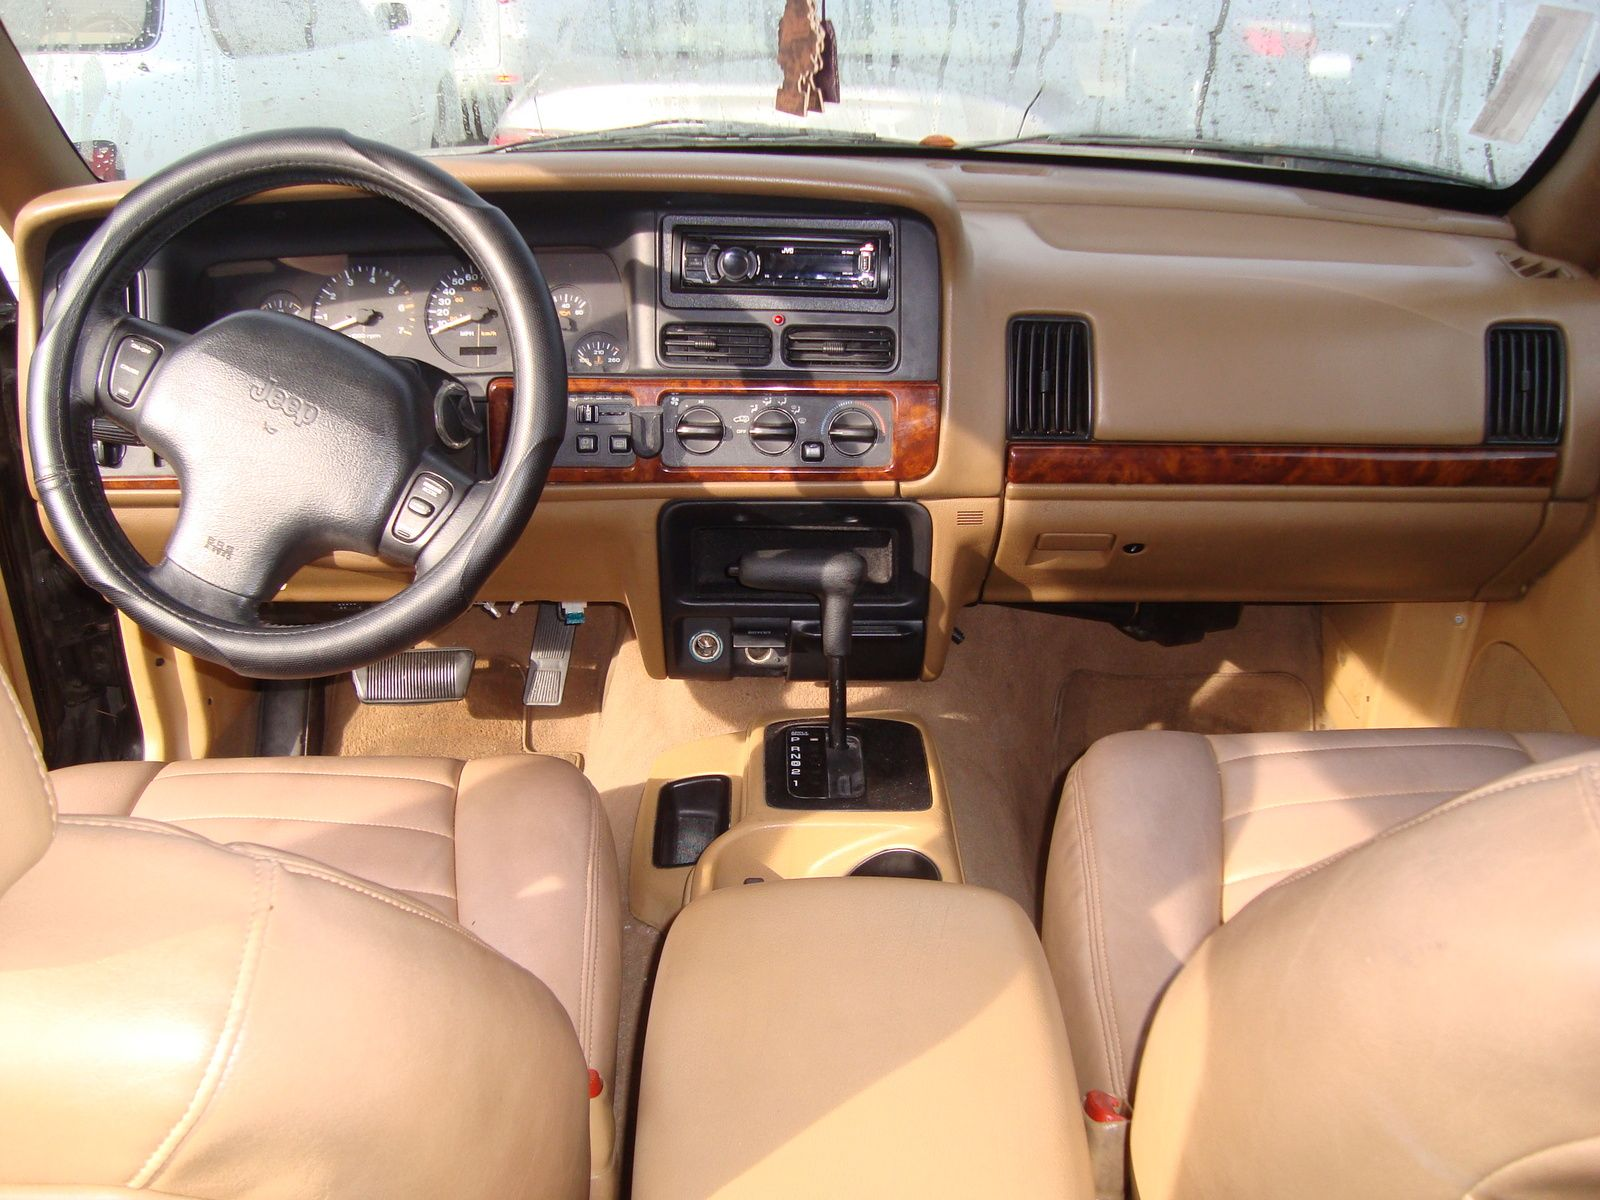 1998 Jeep Grand Cherokee Inside Picture Of 1998 Jeep Grand Cherokee Laredo Interior 1998 Jeep Grand Cherokee Jeep Zj Jeep Grand Cherokee